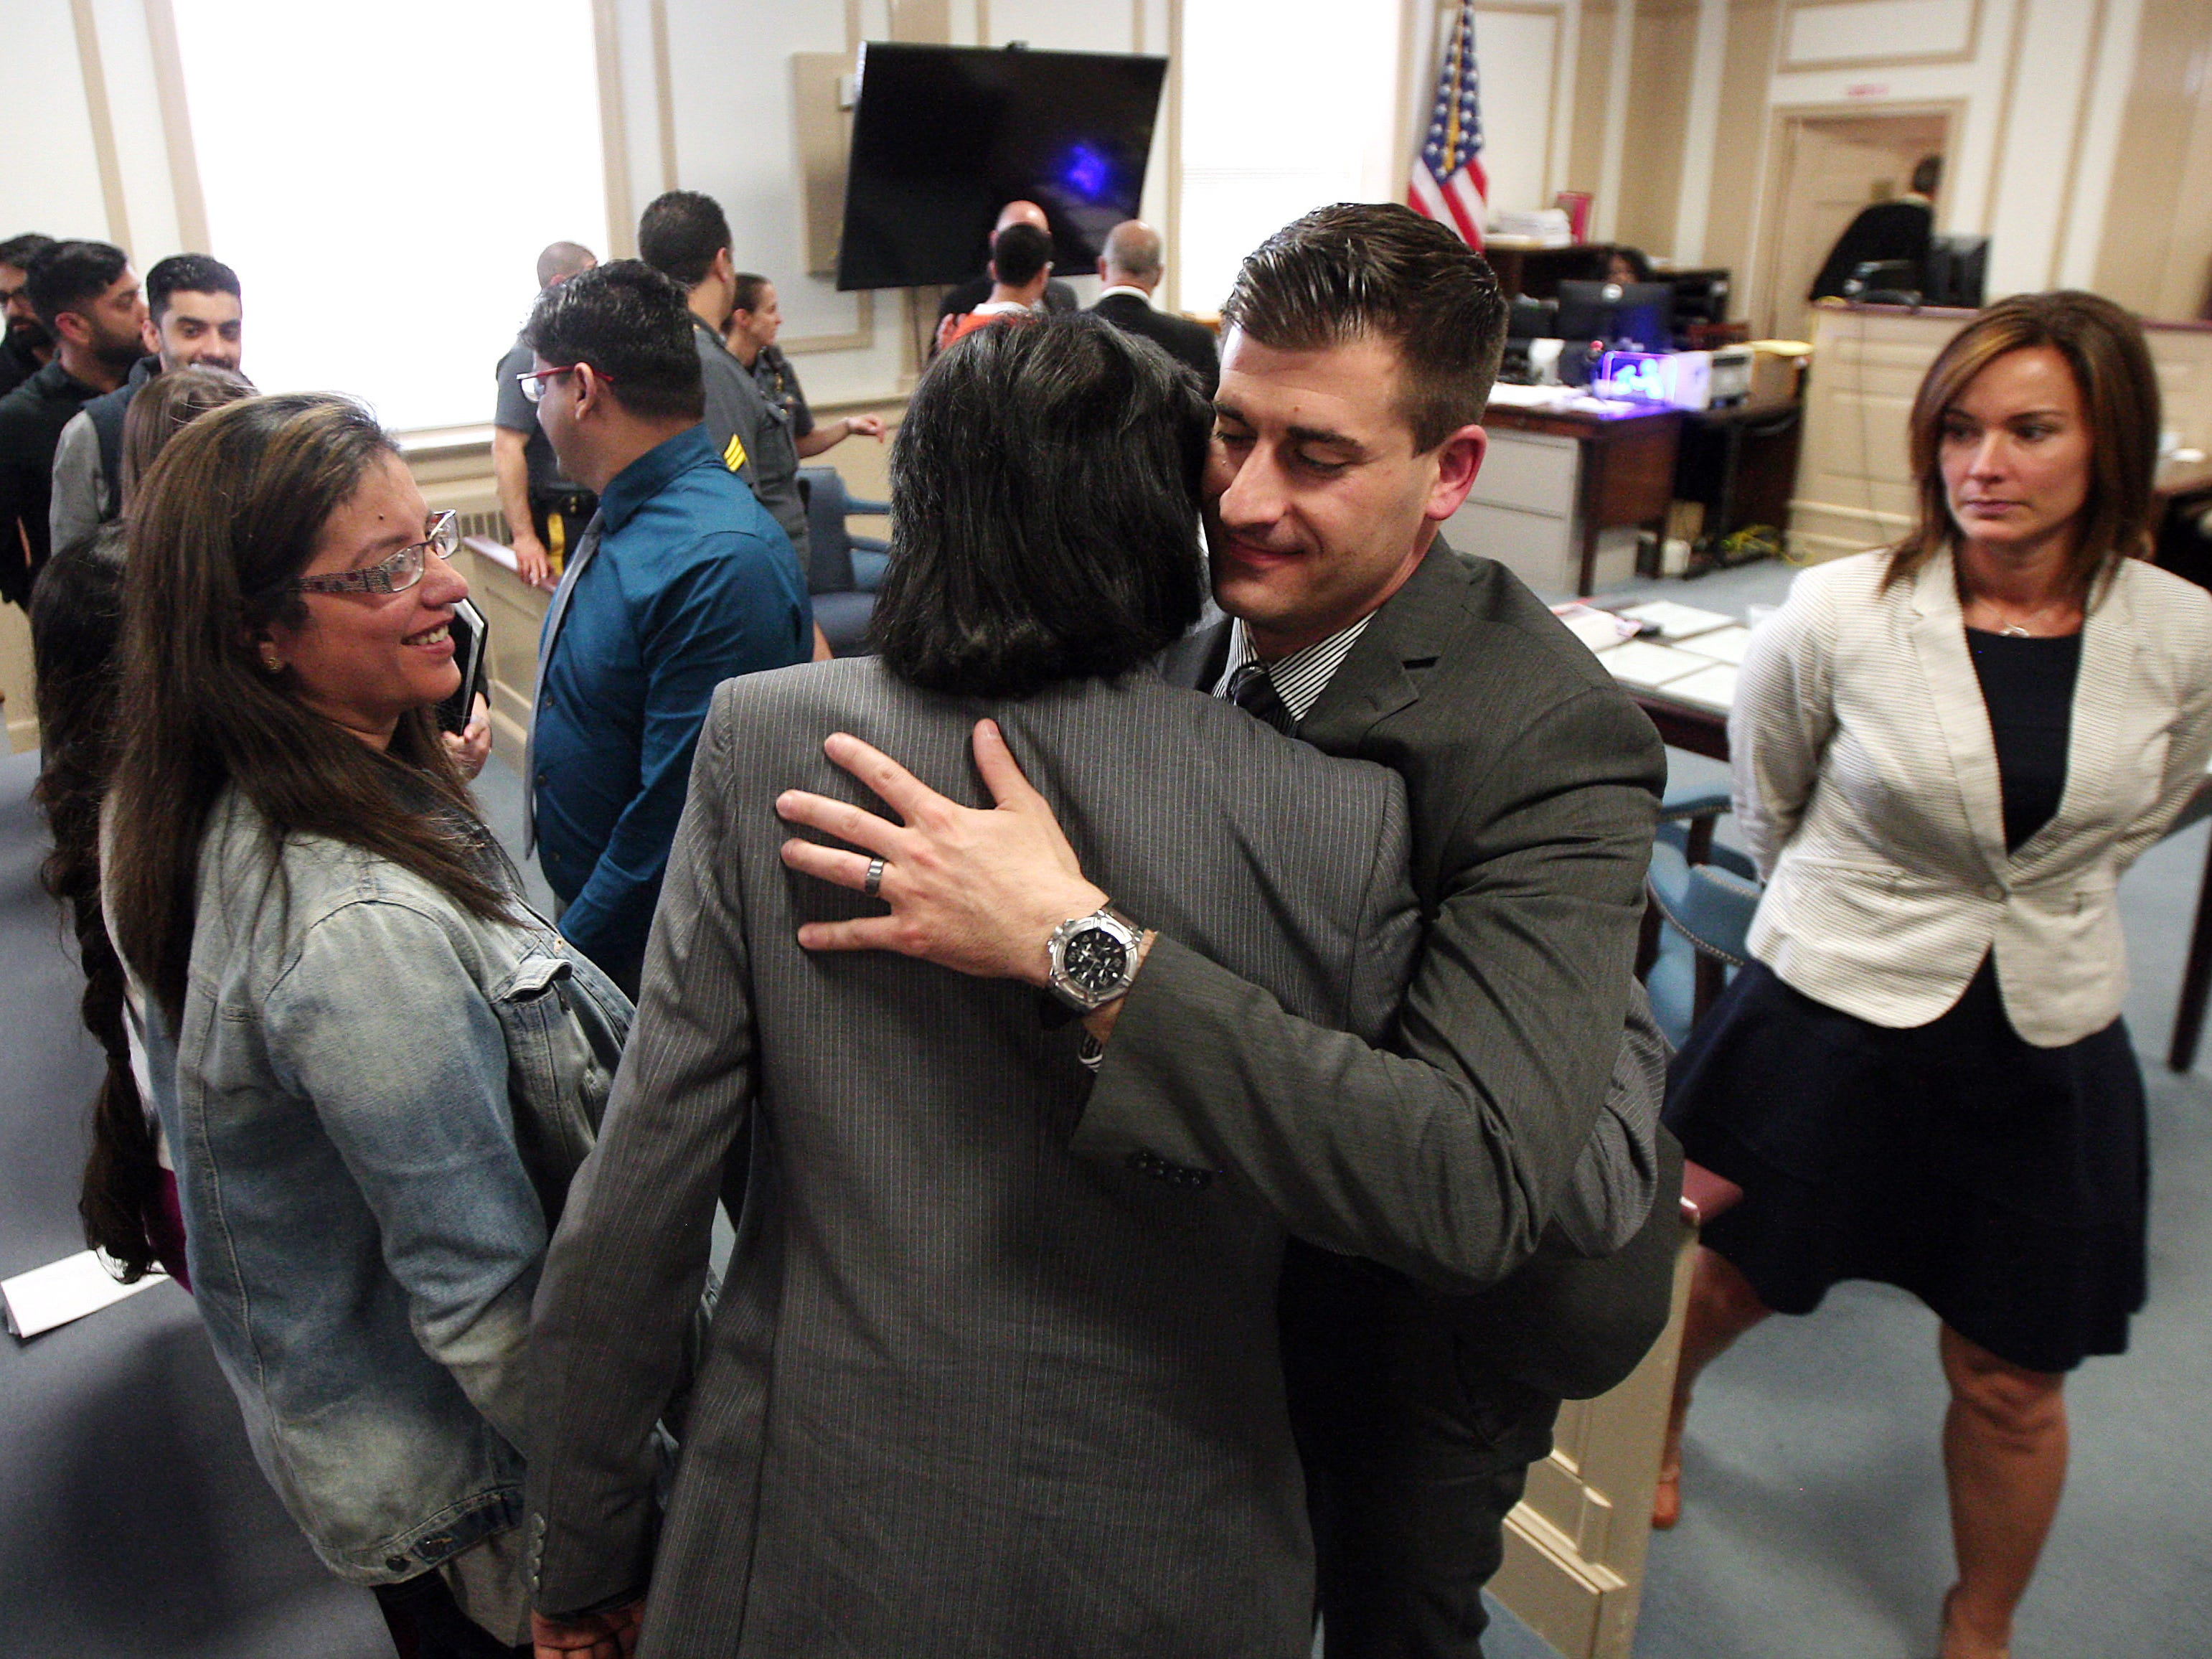 Assistant Prosecutor Matthew Troiano hugs the family of Nazish Noorani as Morris County Assistant Prosecutor Erin Callahan looks on after Kashif Parvaiz was sentenced to life in state prison, plus 10 years, in the murder of his wife who was shot to death on a Boonton street by Antionette Stephen in 2011. May 21, 2015. Morristown, N.J. Bob Karp/Staff Photographer.